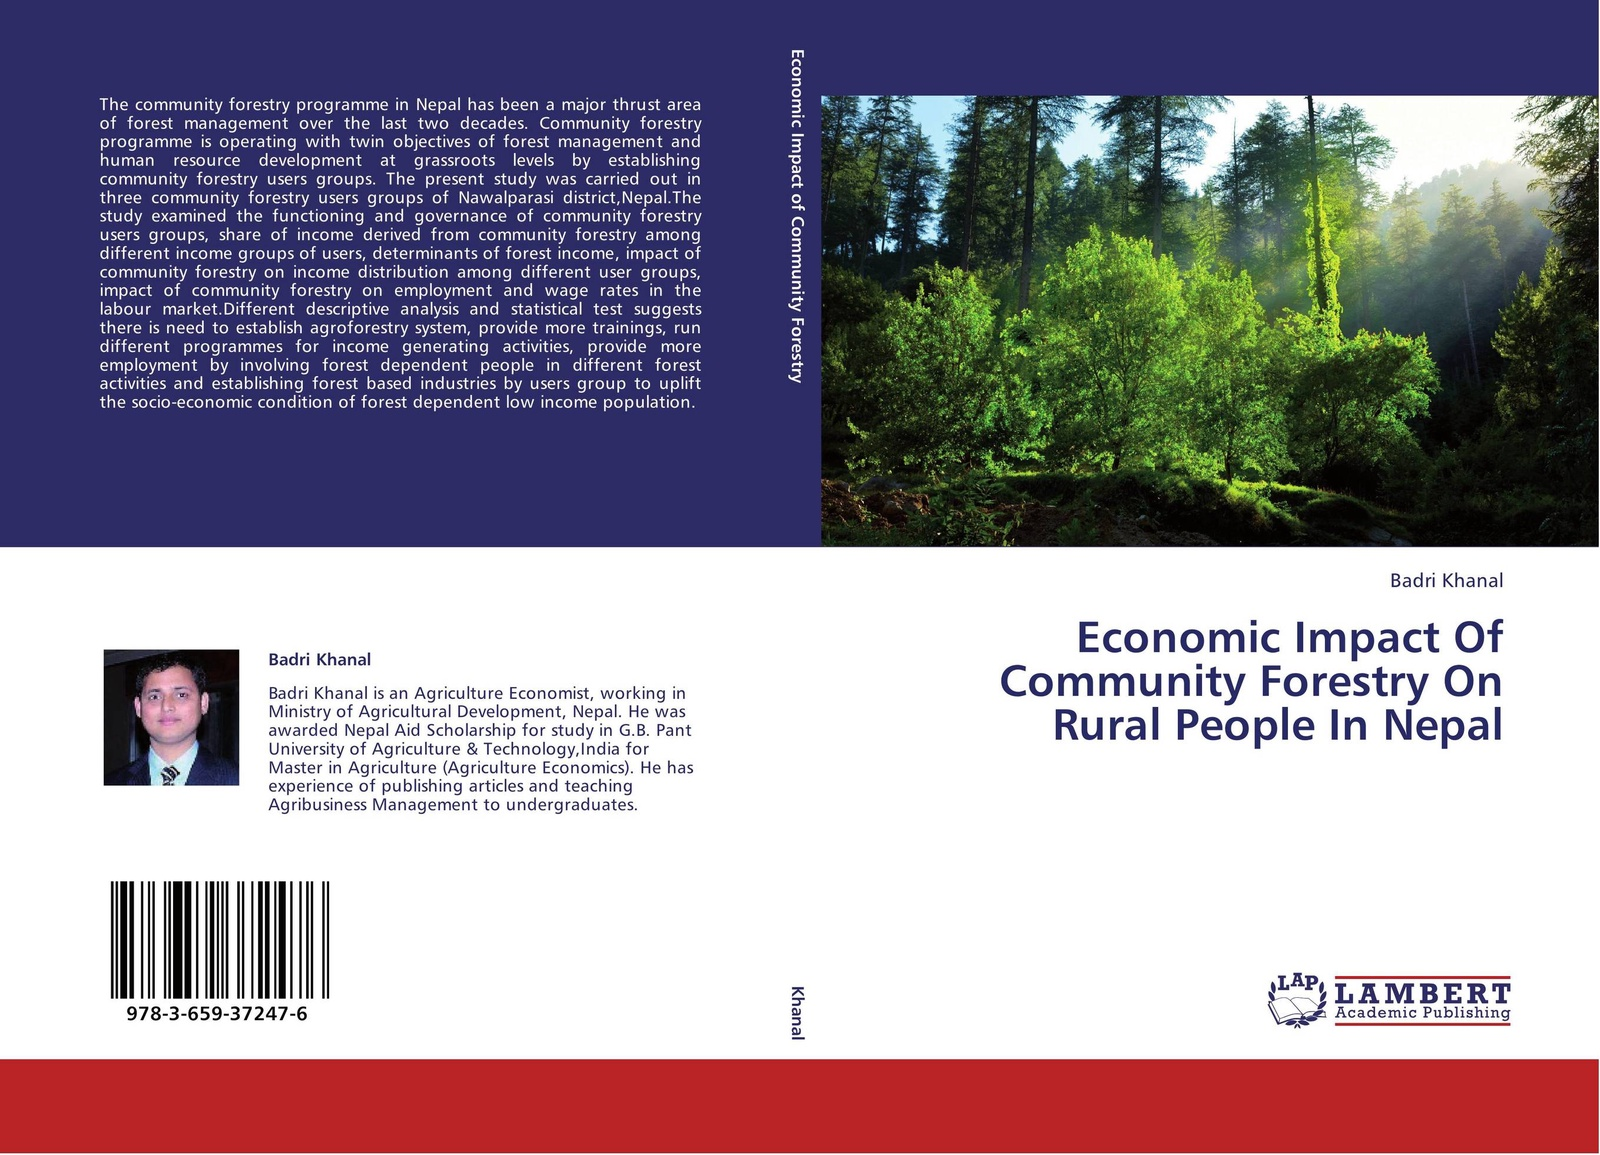 Badri Khanal Economic Impact Of Community Forestry On Rural People In Nepal mariam bachich community based rural heritage management in syria